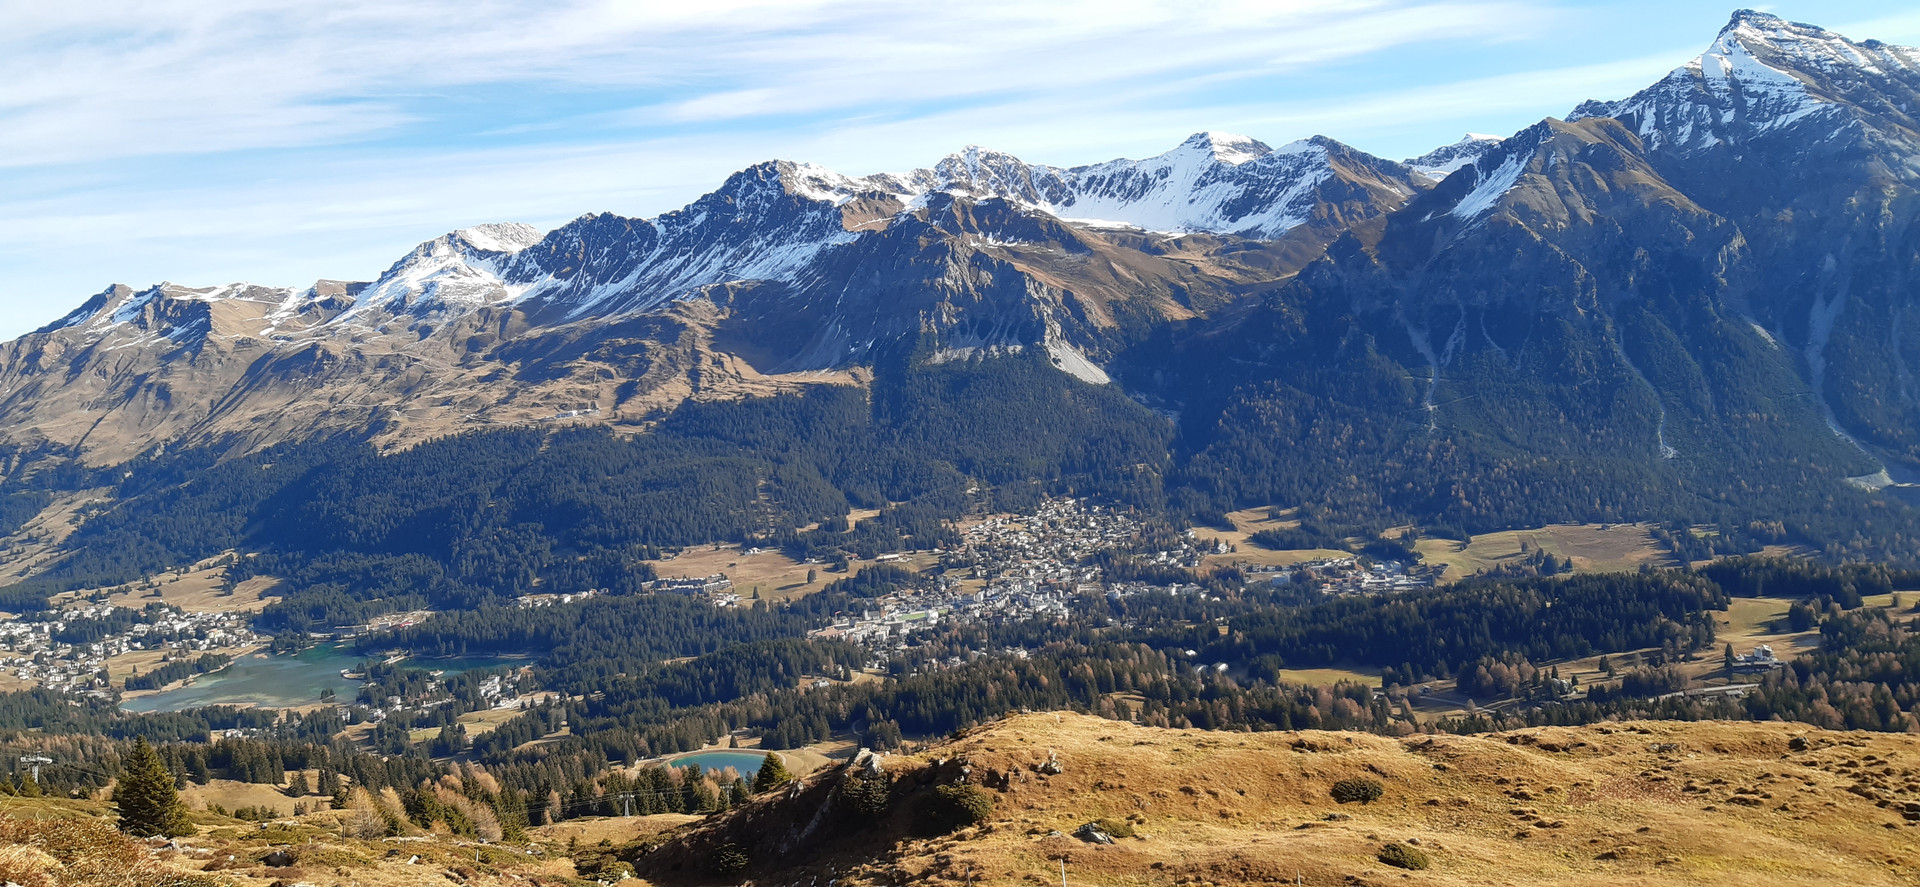 Lenzerheide in the fall. Photo by Michèle Ott.